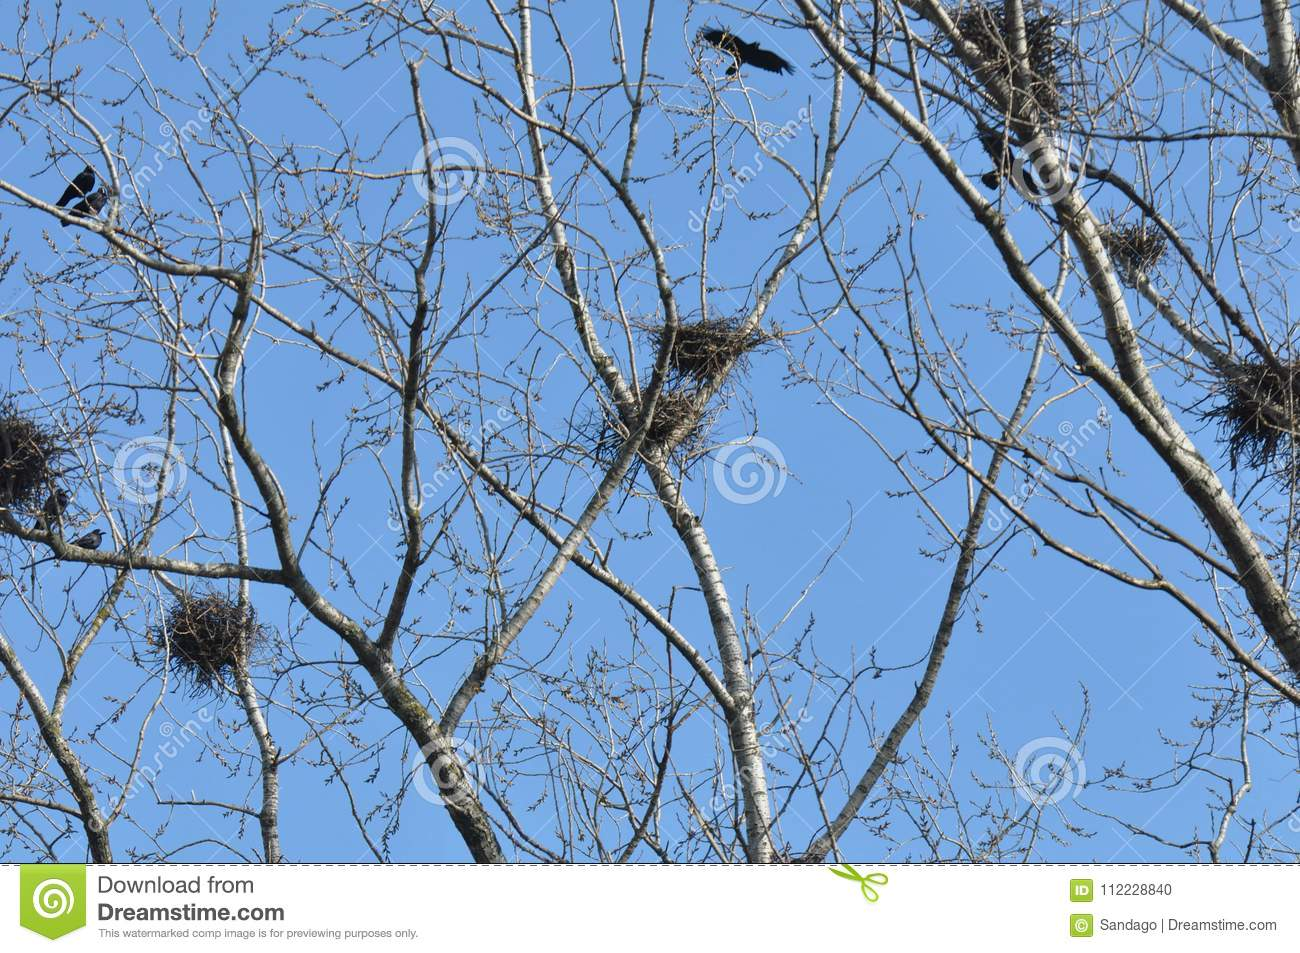 Nest and crows on tree top branch